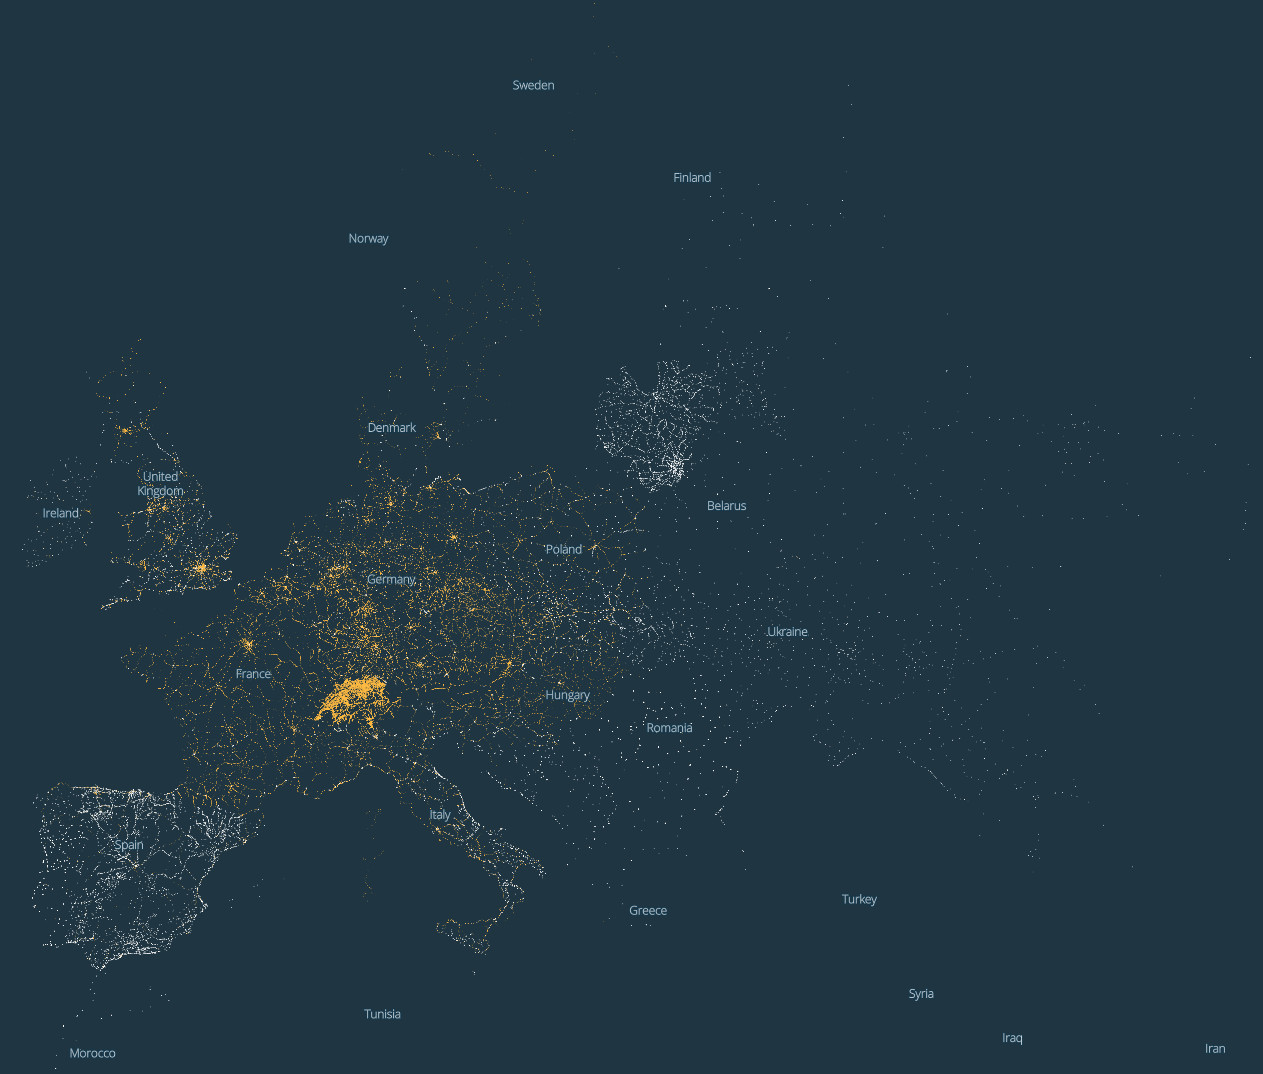 Dark Map of European Infrastructure